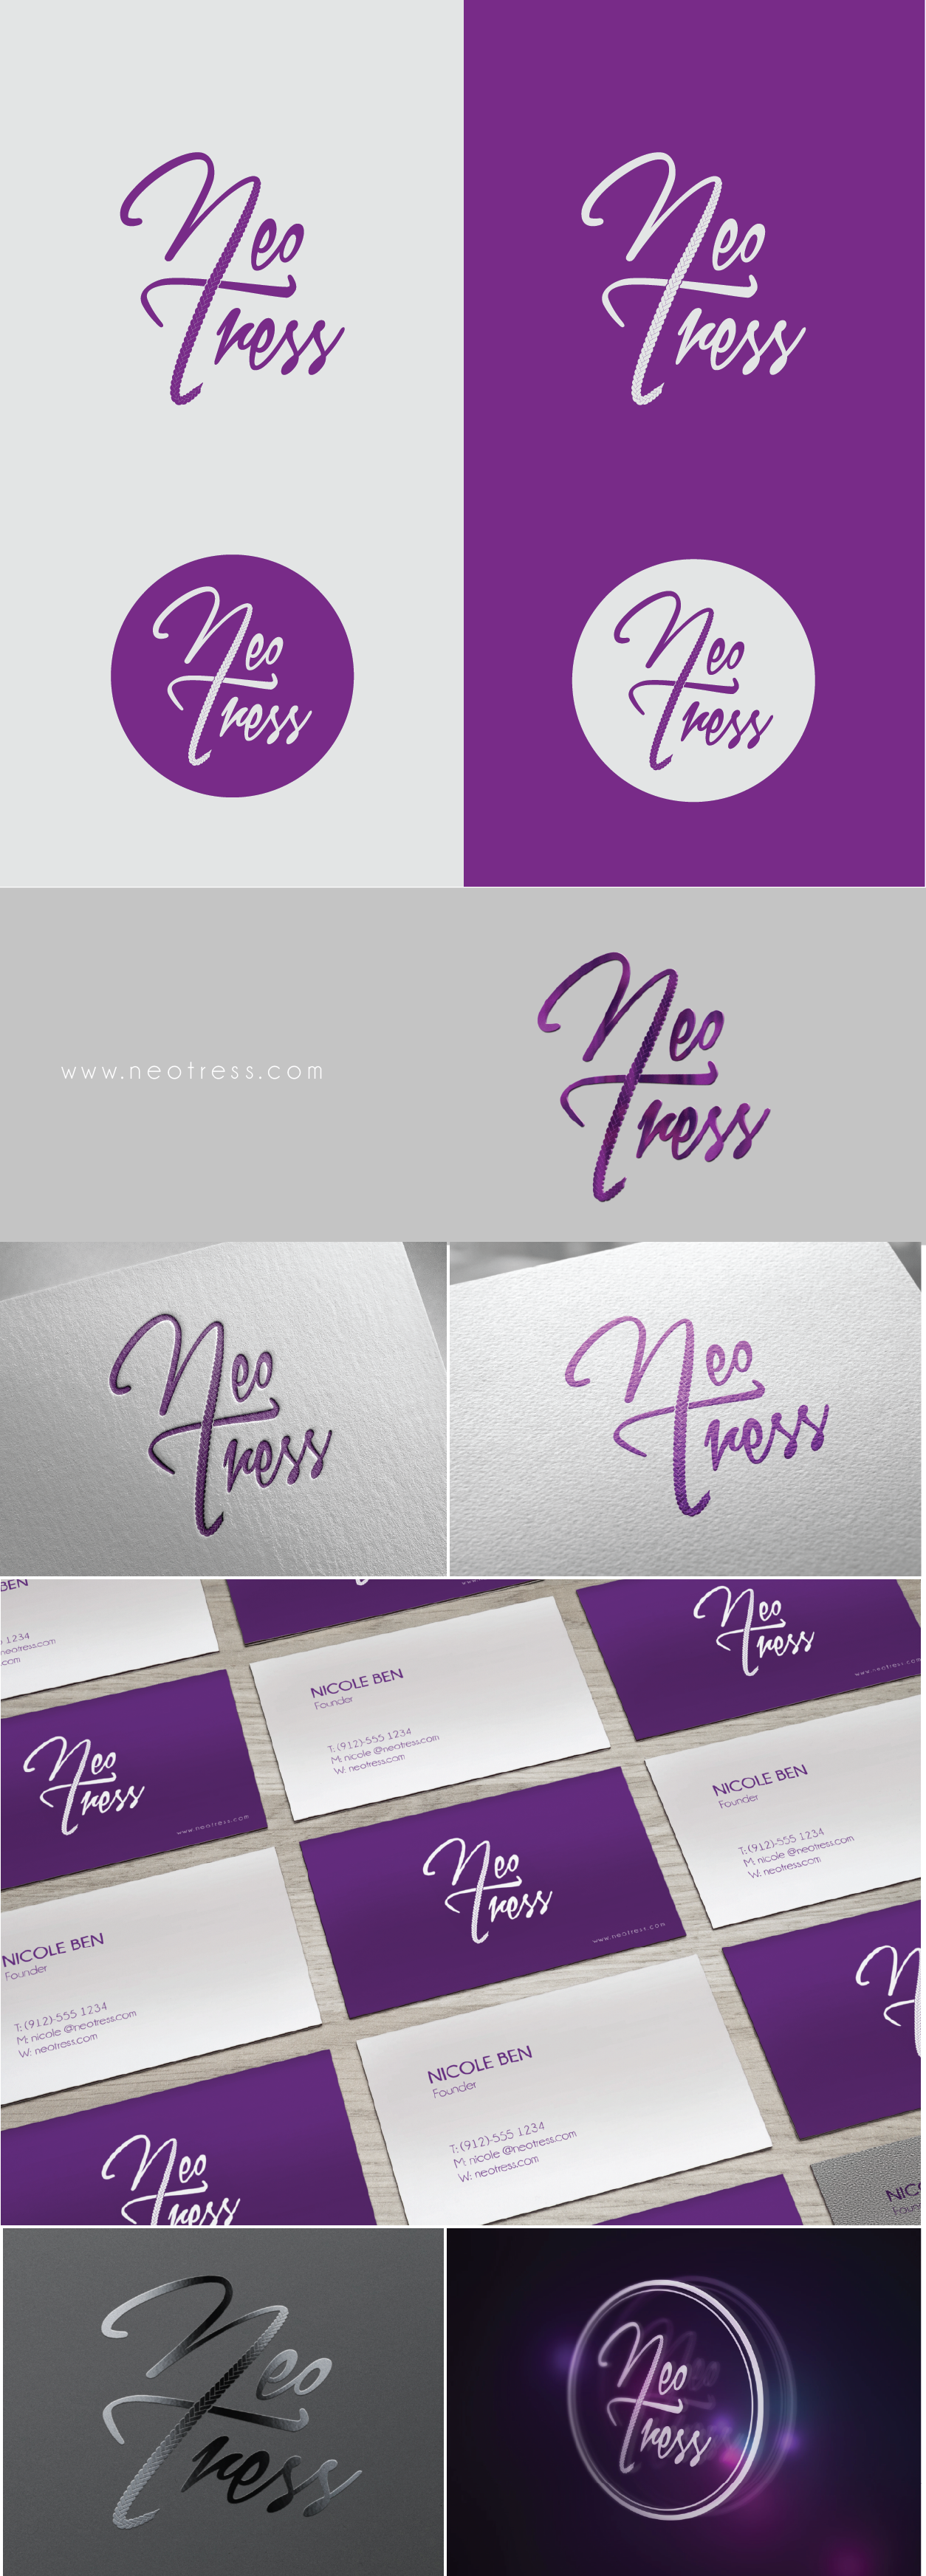 Create a captivating and beautiful logo for a beauty brand!